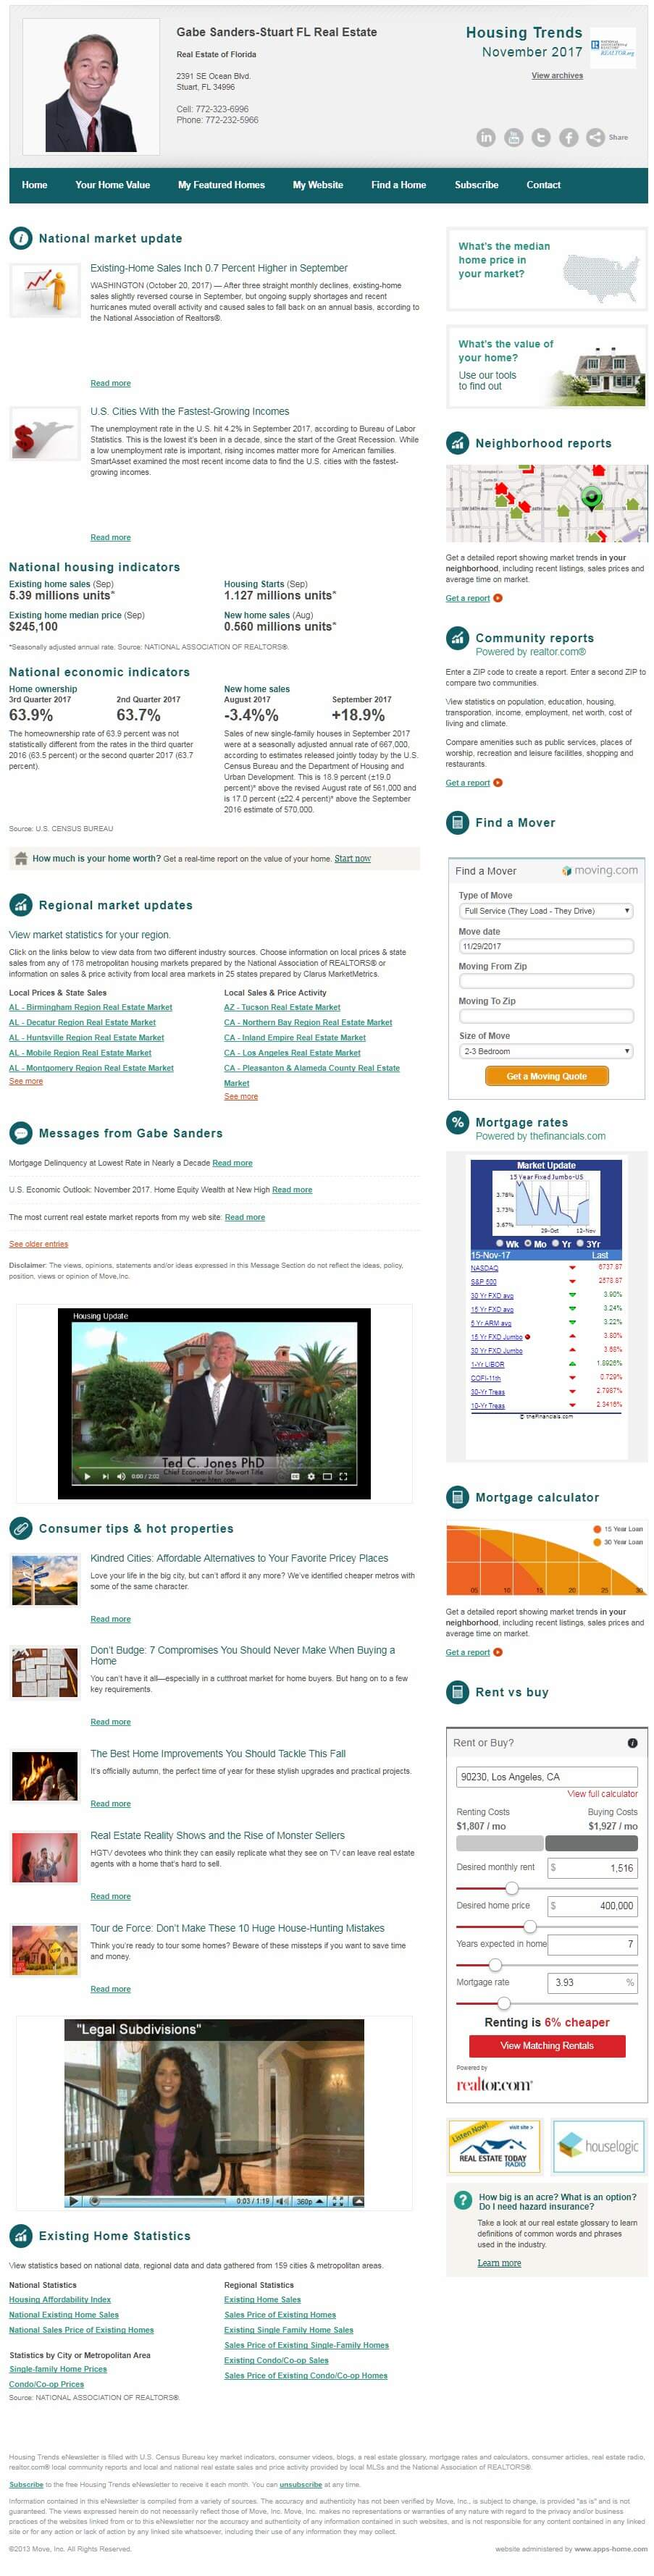 Gabe's November 2017 Housing Trends eNewsletter